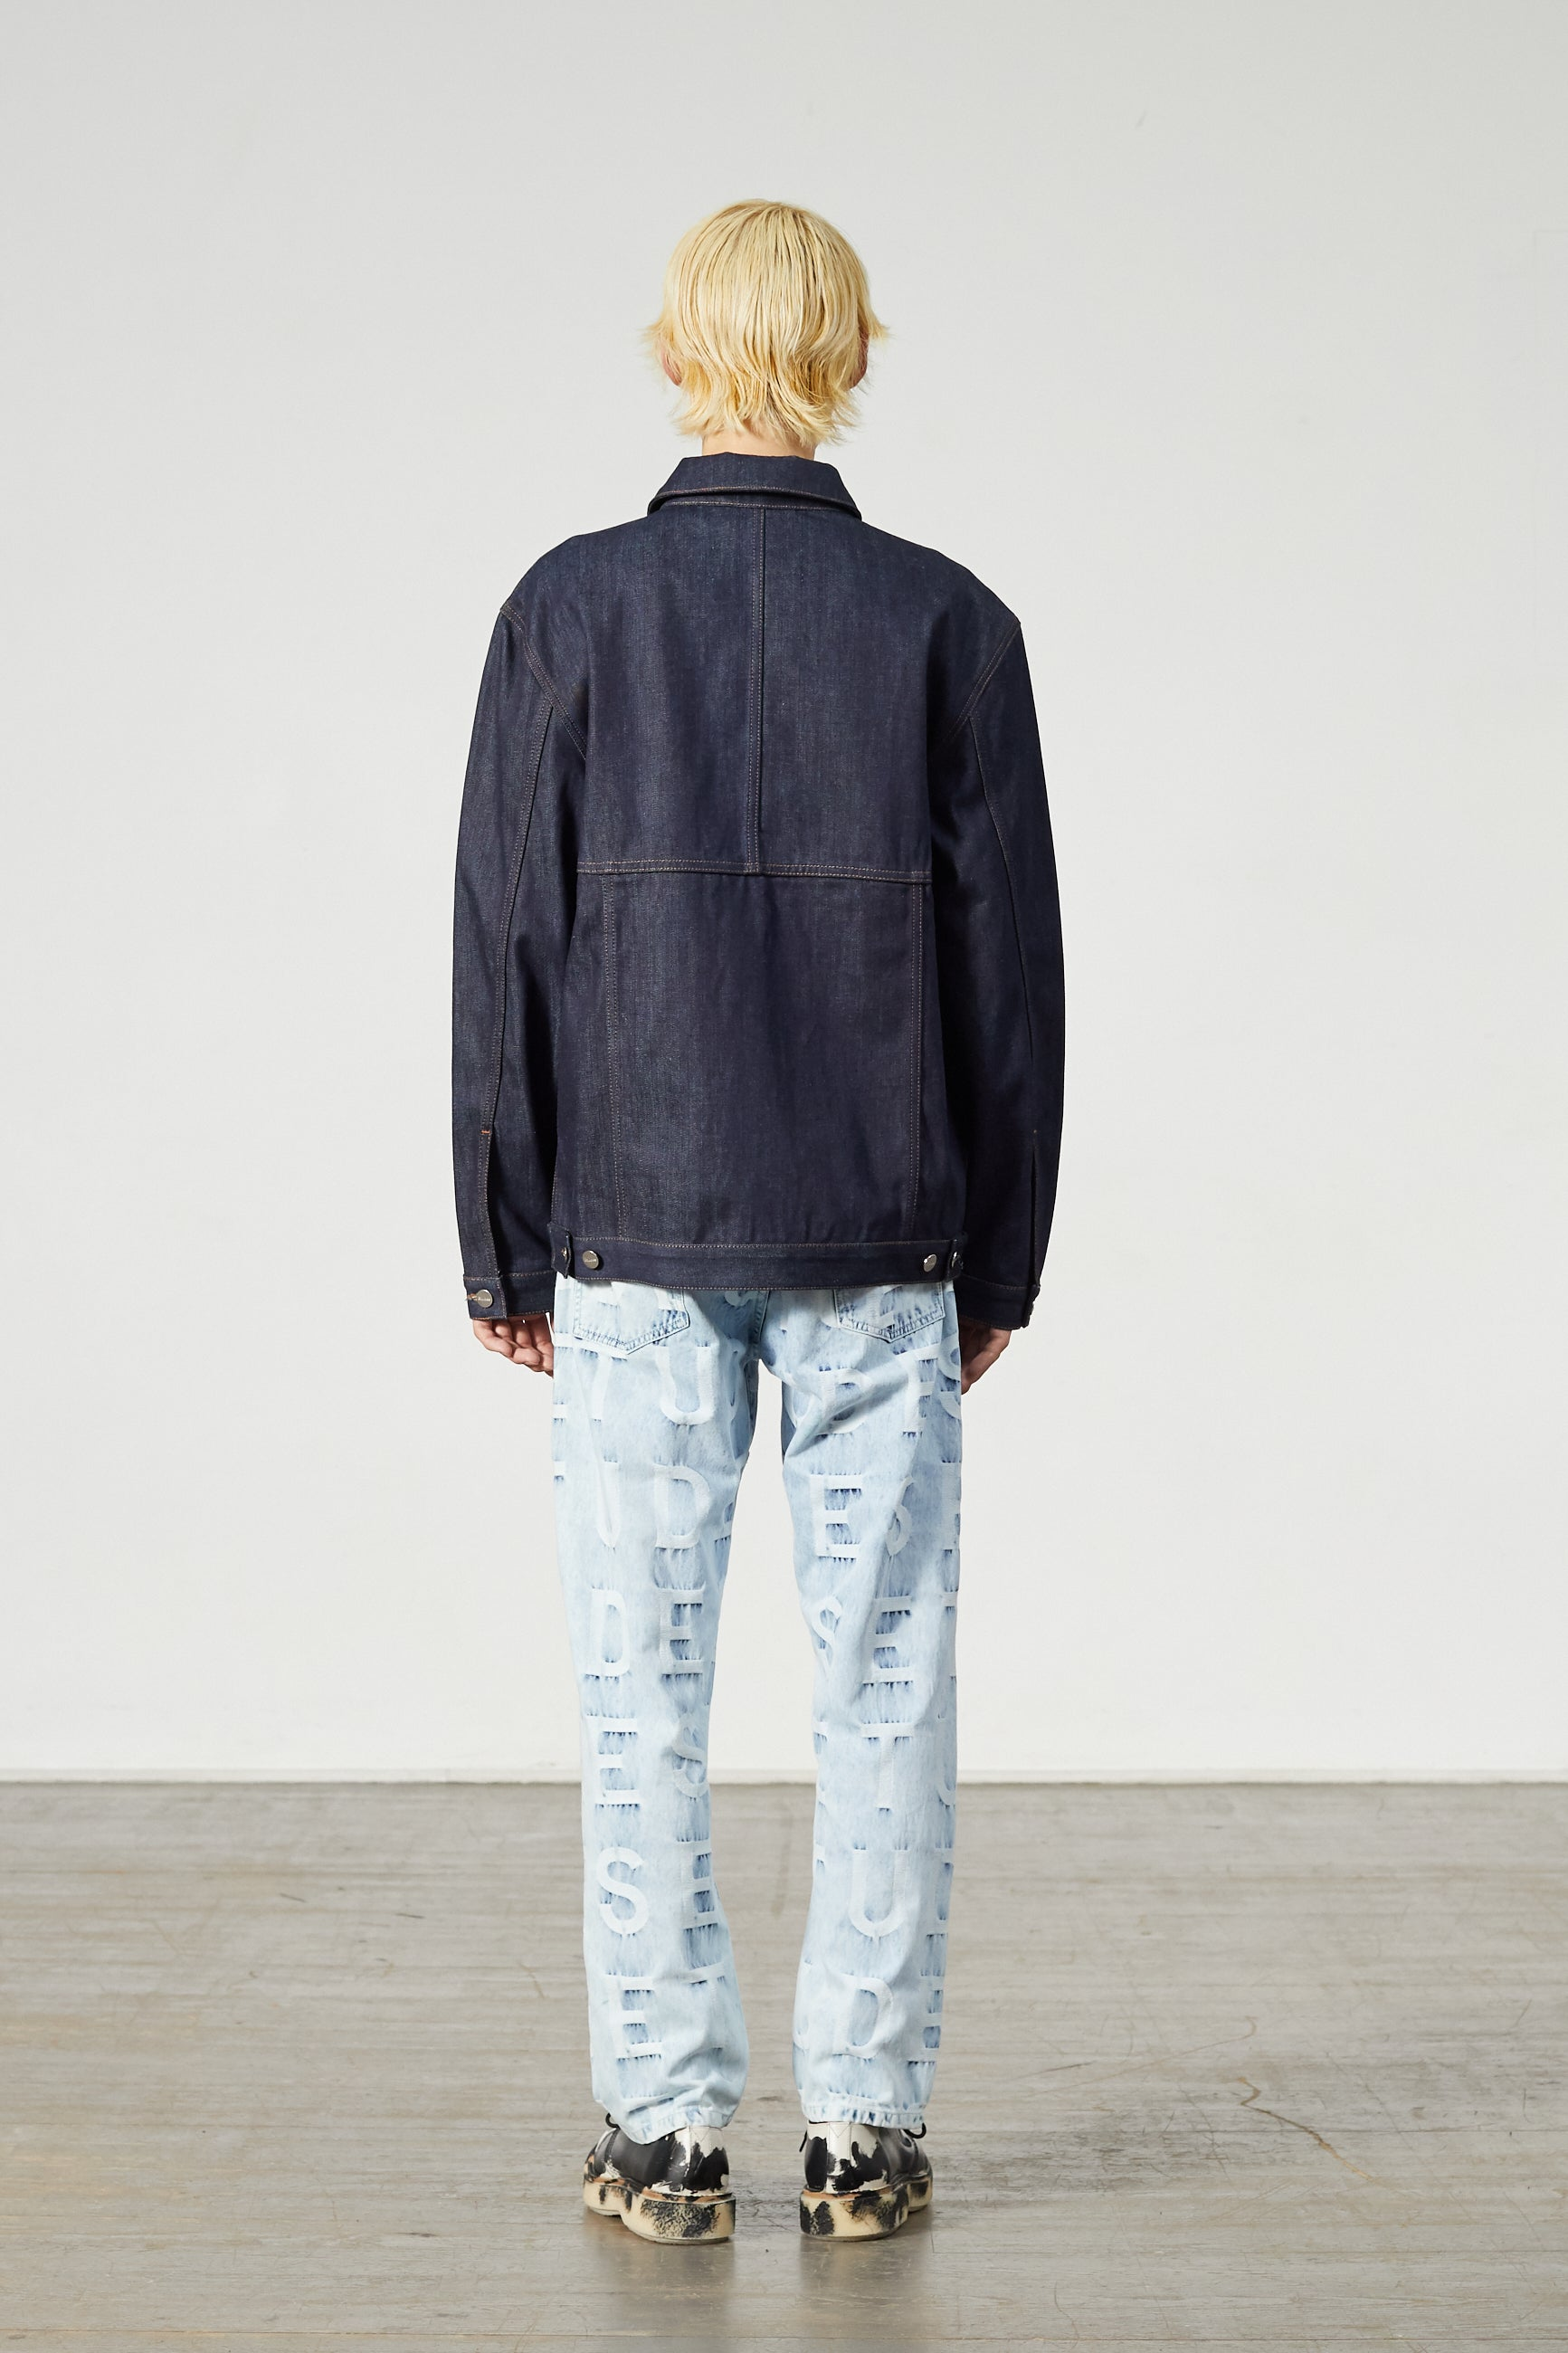 GUEST DENIM INDIGO